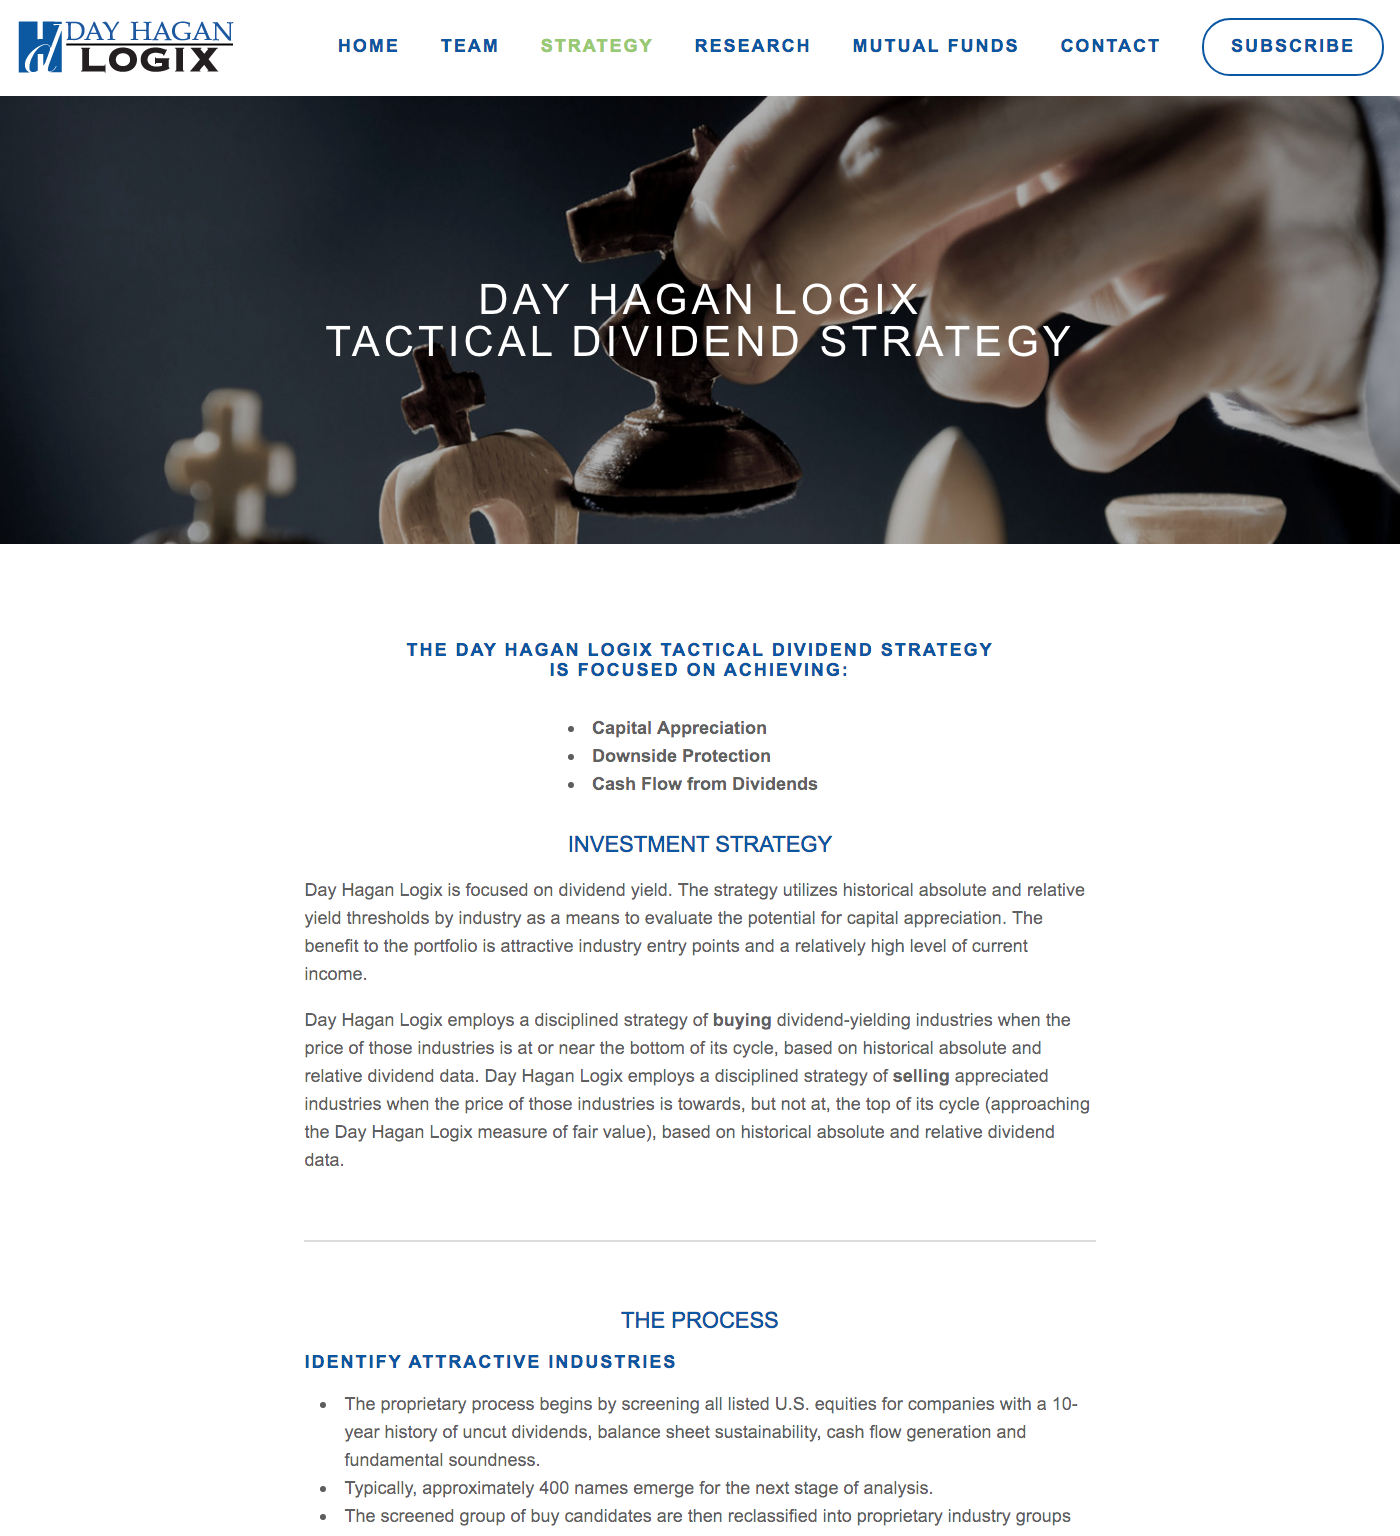 day-hagan-logix-tactical dividend-strategy-page.png